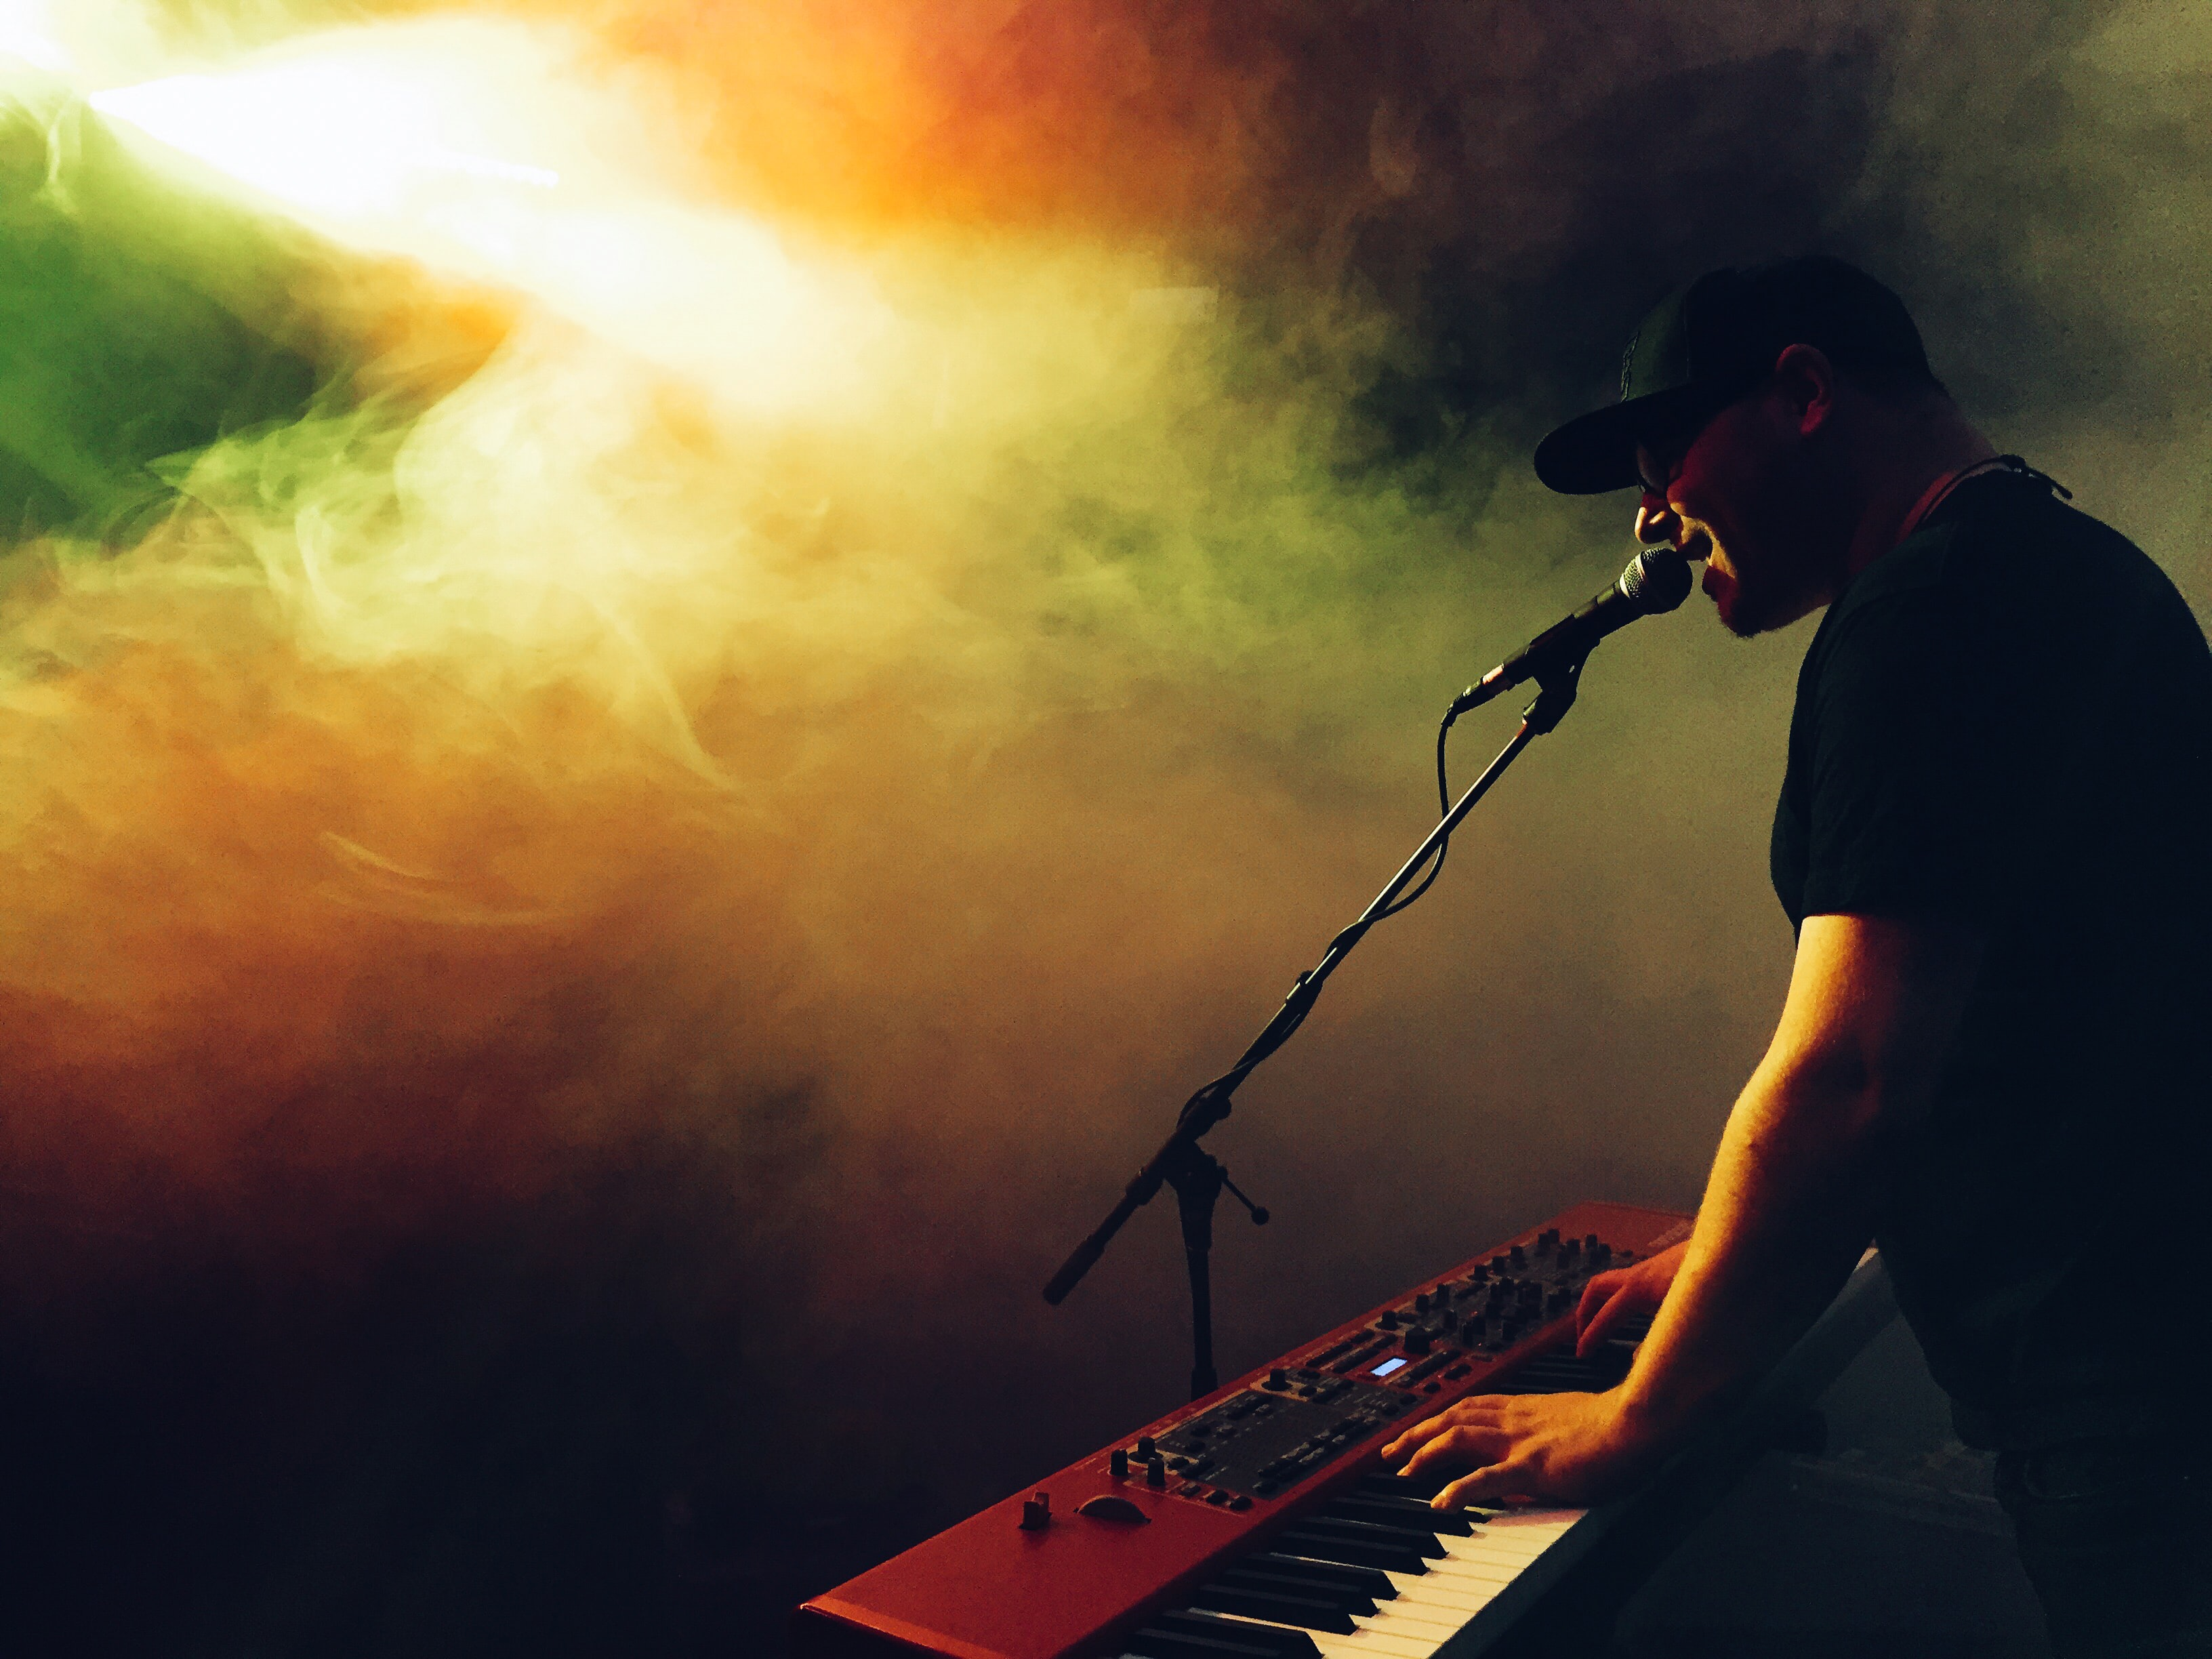 A man in a hat playing the keyboard and singing into a microphone with colorful smoke in front of him